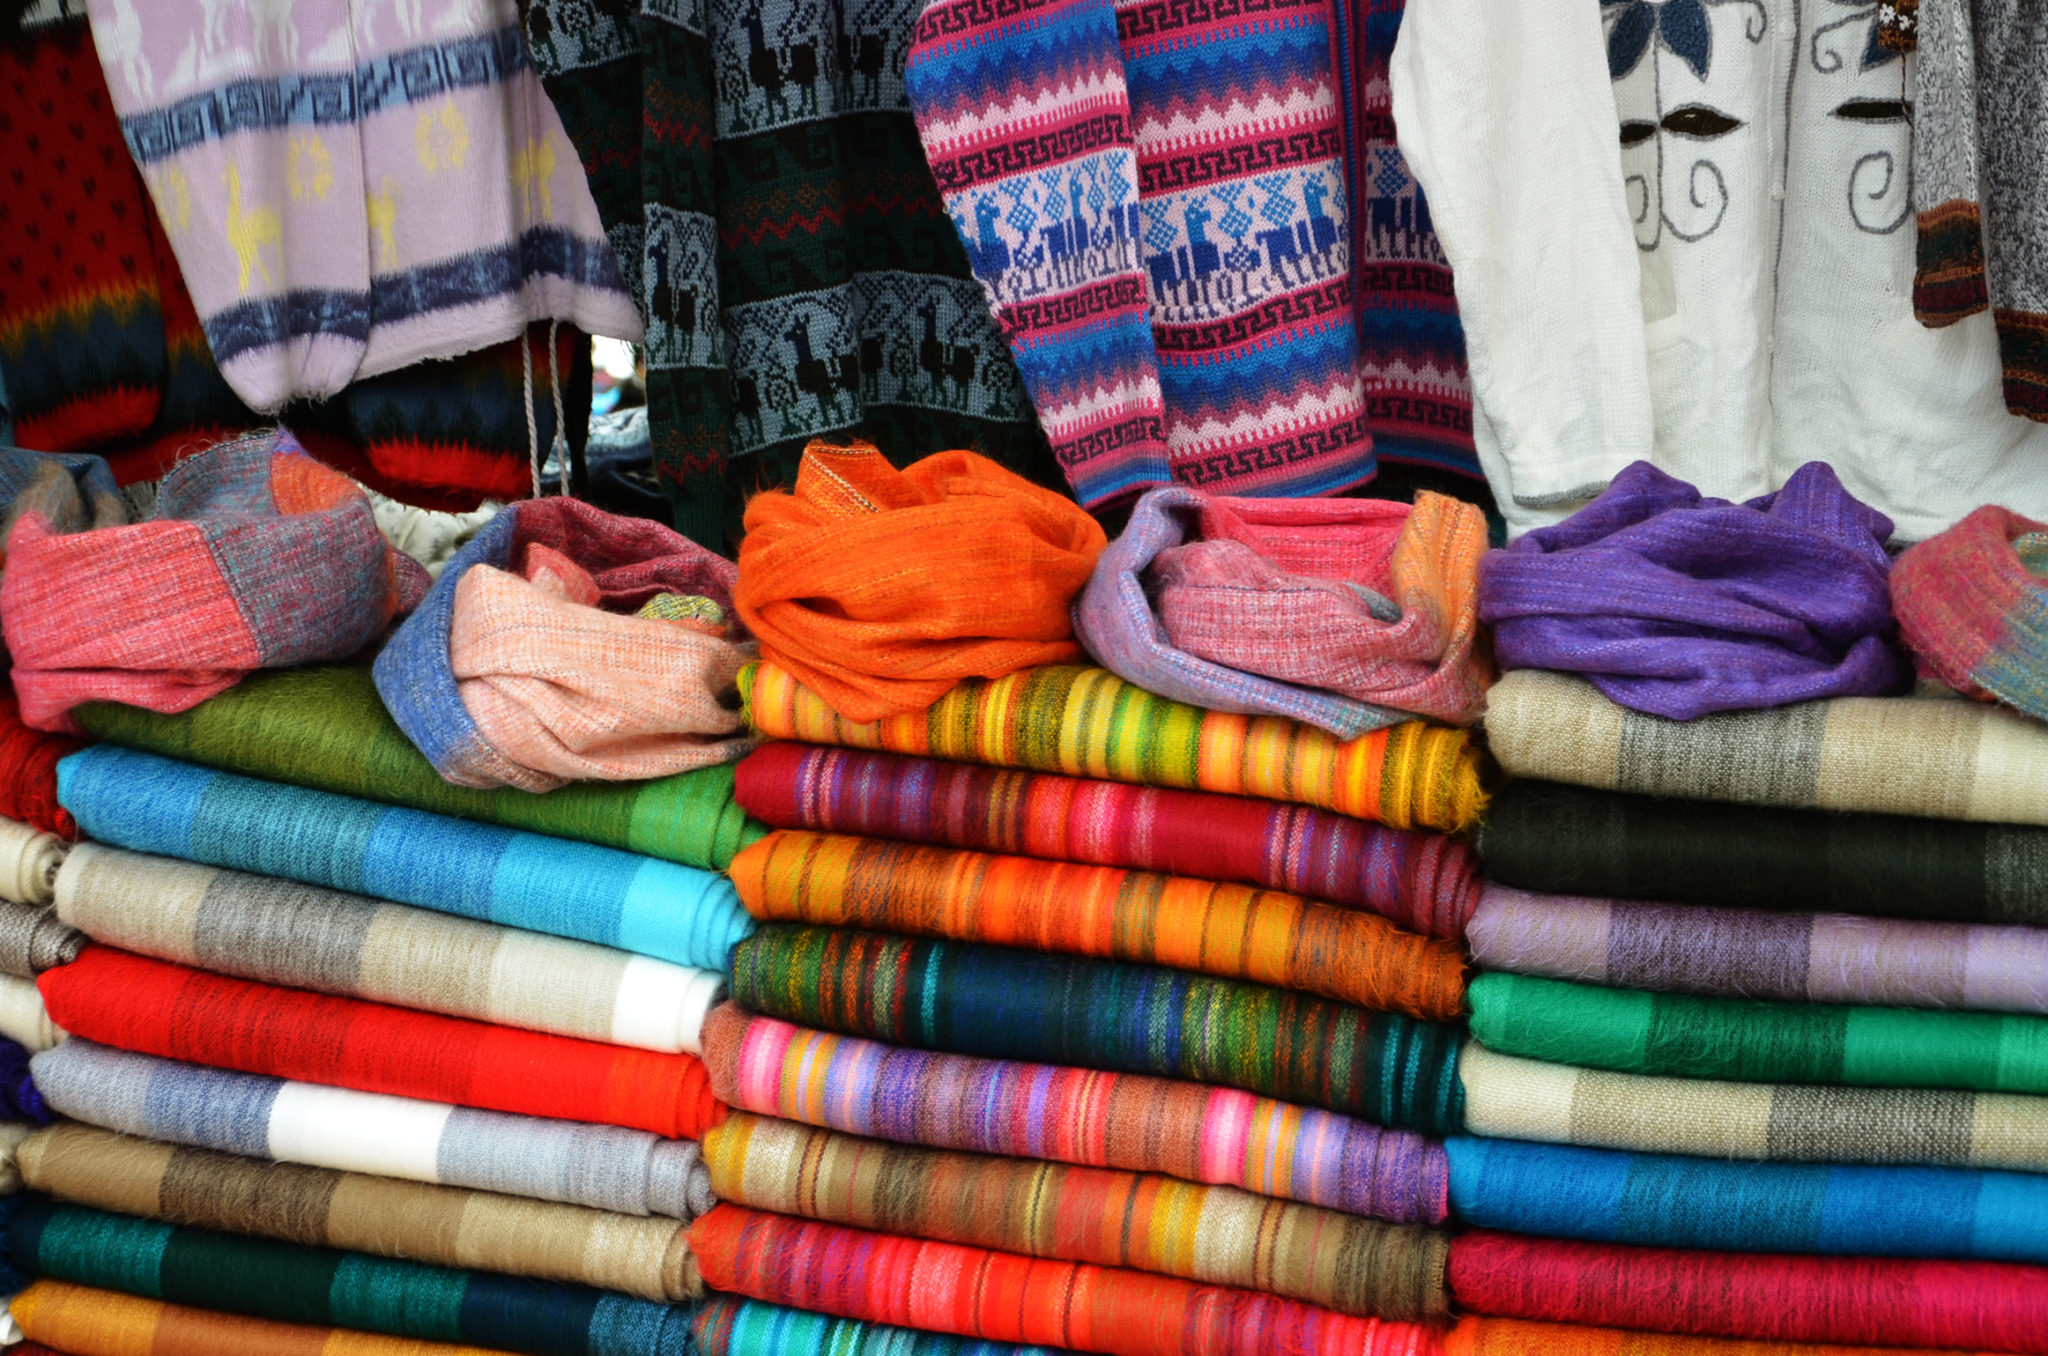 Things-to-see-in-Ecuador-Otovalo-Andean-market-Handwerksmarkt